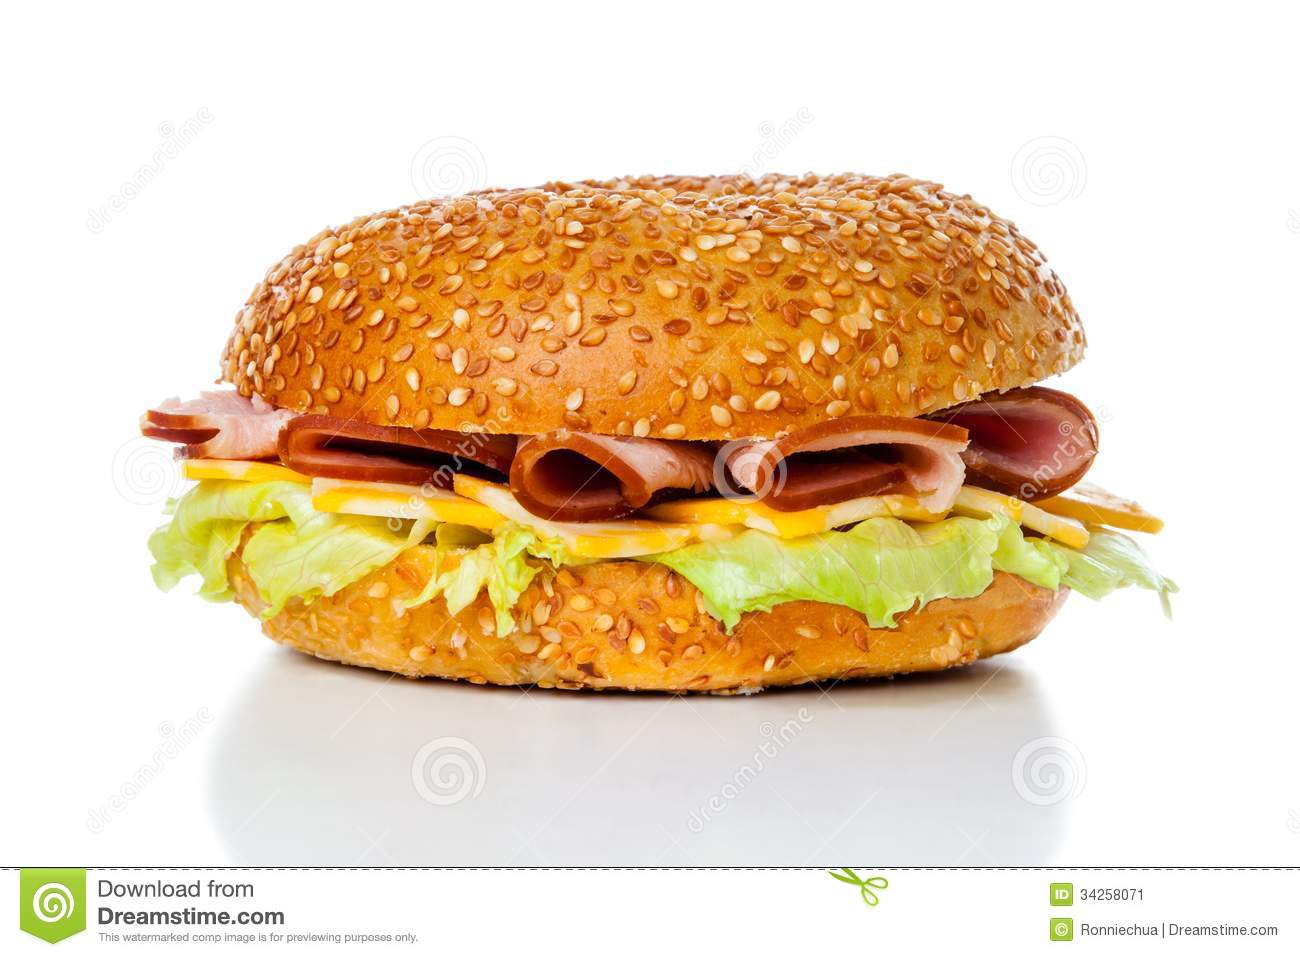 ham and cheese bagel sandwich stock image image of vegetable rh dreamstime com Hamburger Clip Art Bagel Sandwich Ideas